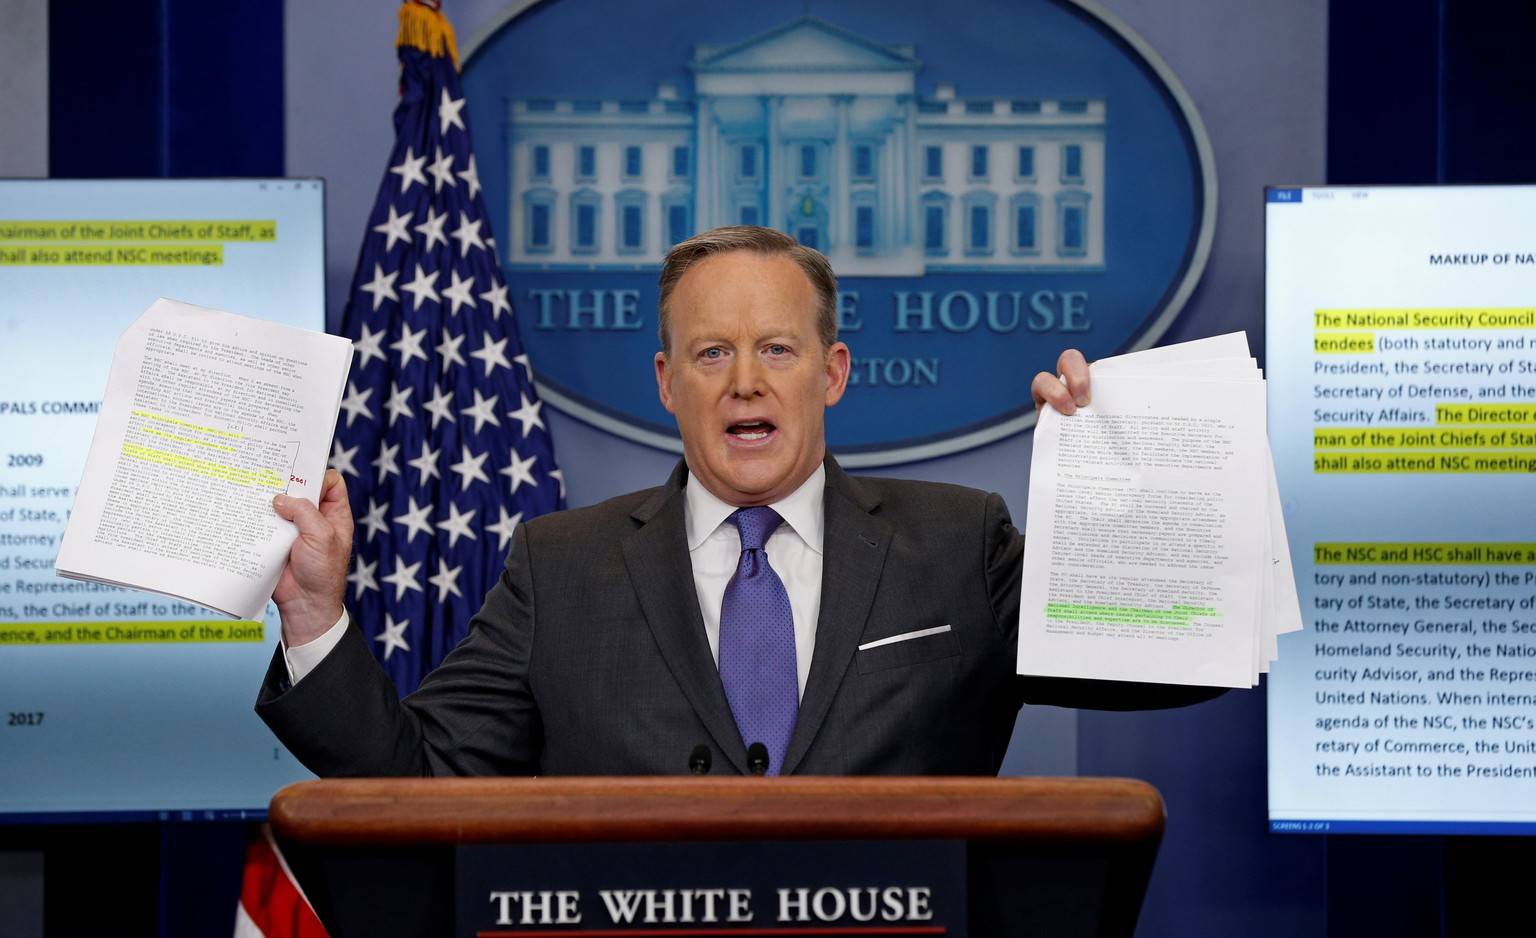 White House spokesman Sean Spicer holds up documents comparing the makeup of the National Security Council (NSC) in the Trump and Obama administrations during his press briefing at the White House in Washington, DC, U.S. January 30, 2017. REUTERS/Kevin Lamarque